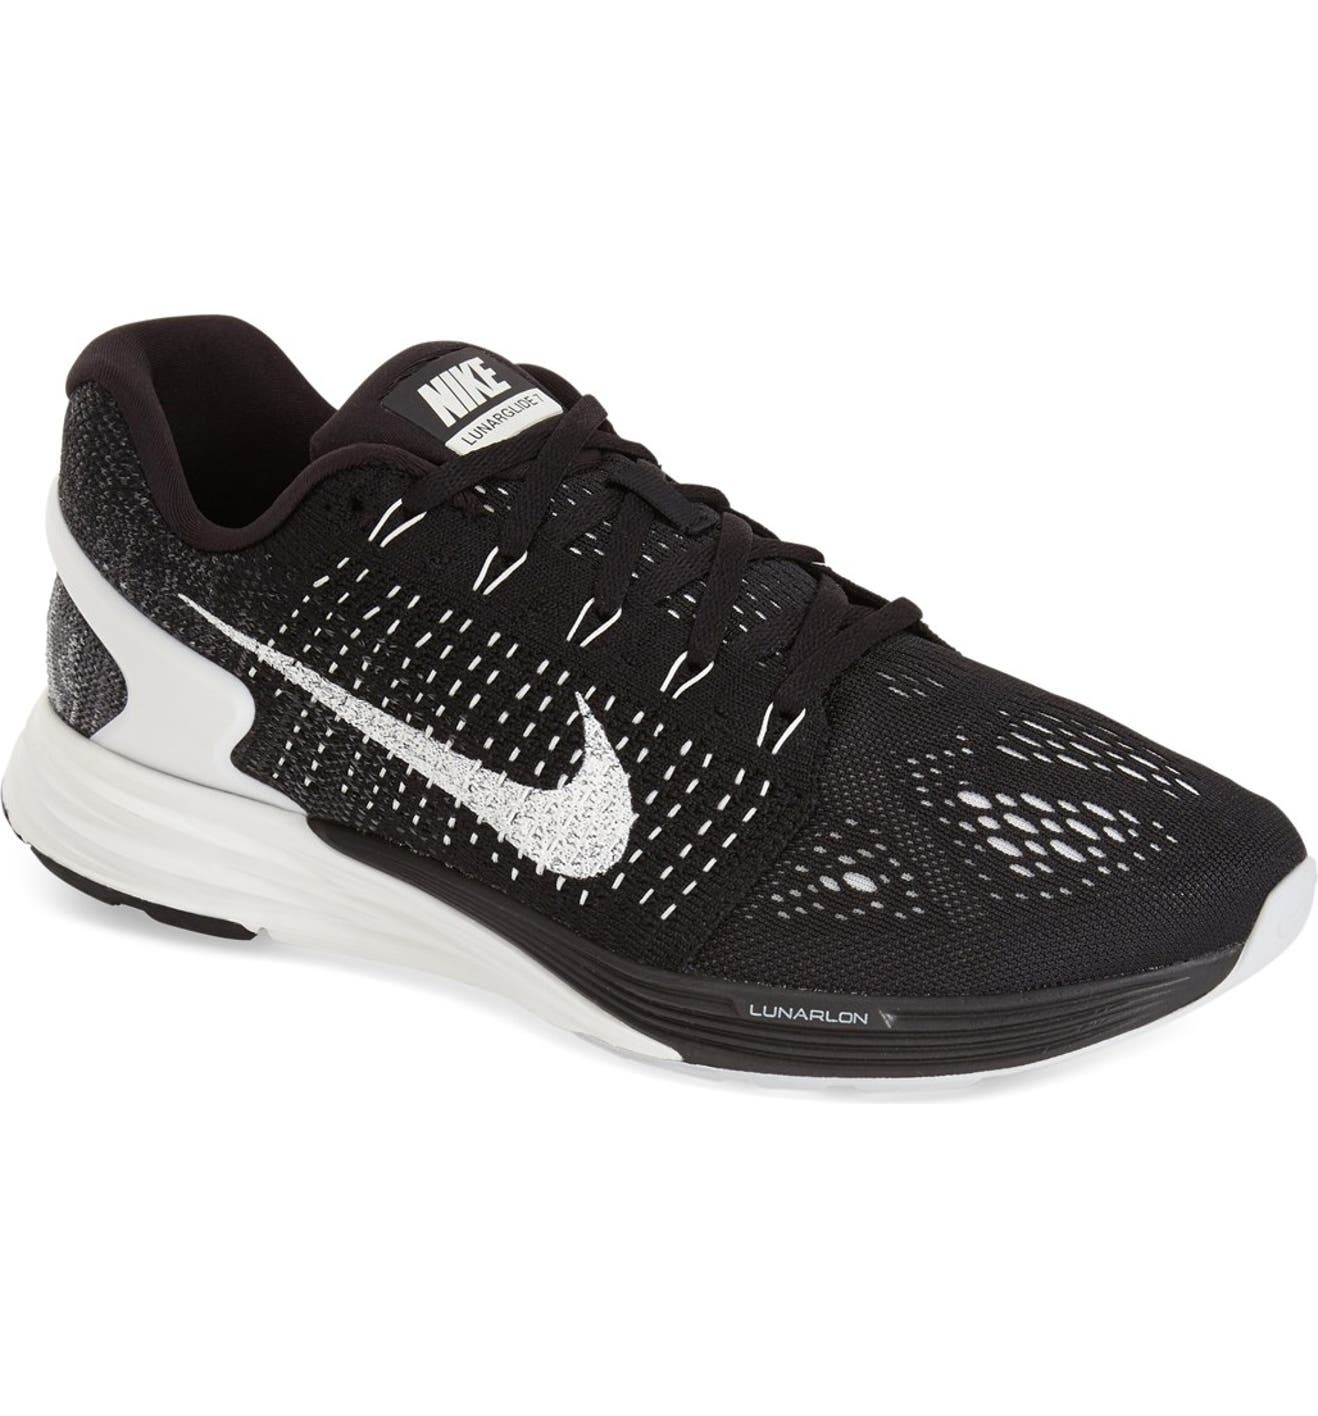 38ee4a7da03d ... Black Summit White Anthracite  Nike Lunarglide 7 Running Shoe (Men)  Nordstrom ...